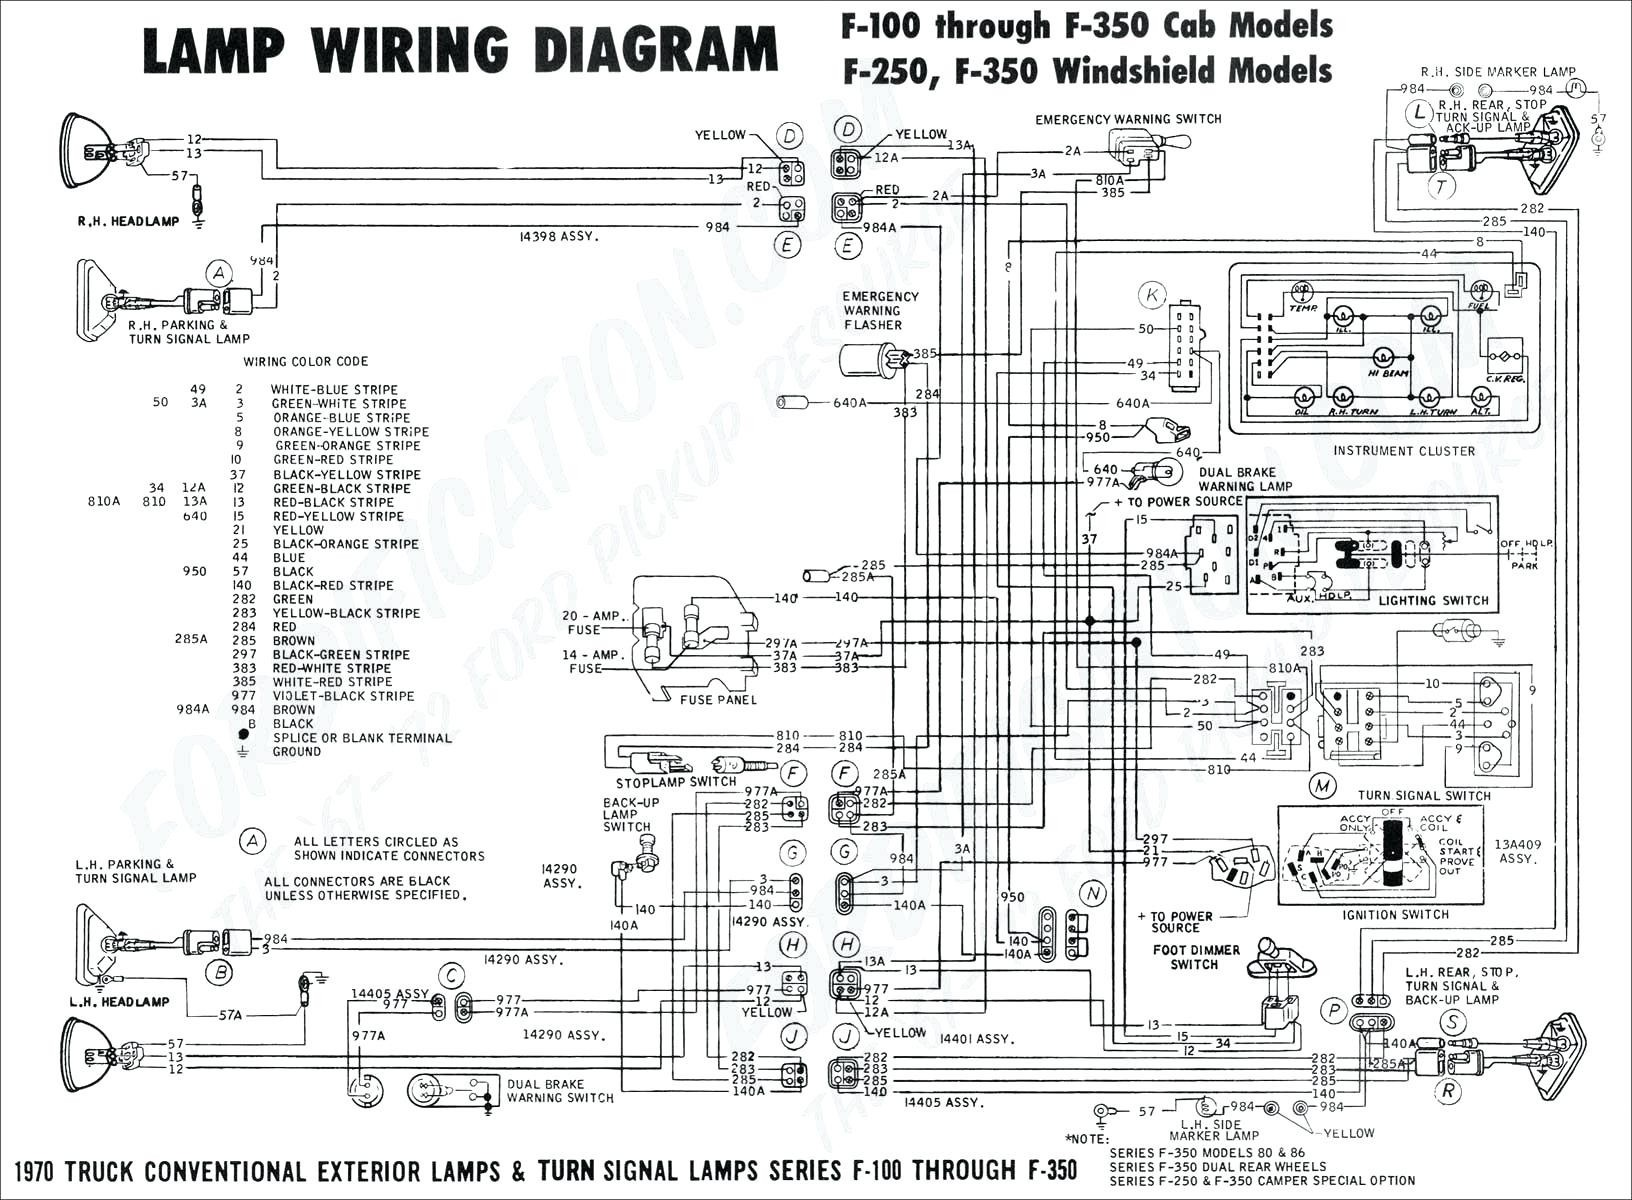 2003 ford F150 Engine Diagram top 2003 ford Escape Engine Diagram Picture –  All ford Auto